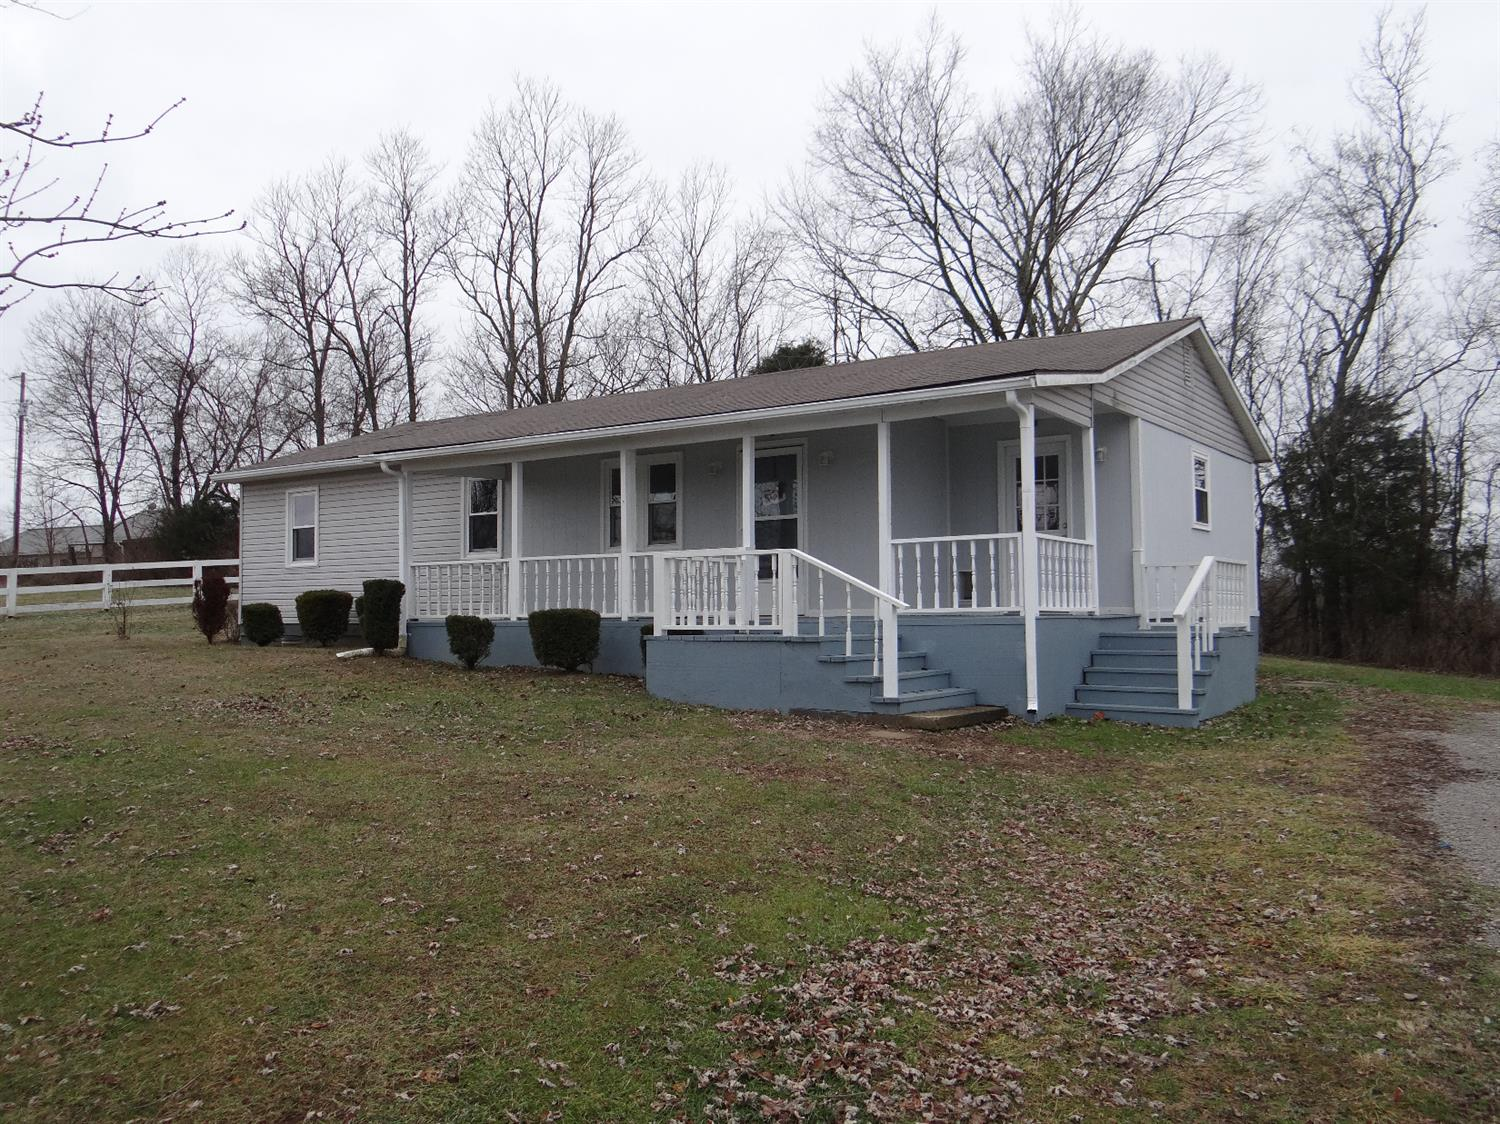 Home For Sale at 3035 Becknerville Rd, Winchester, KY 40391